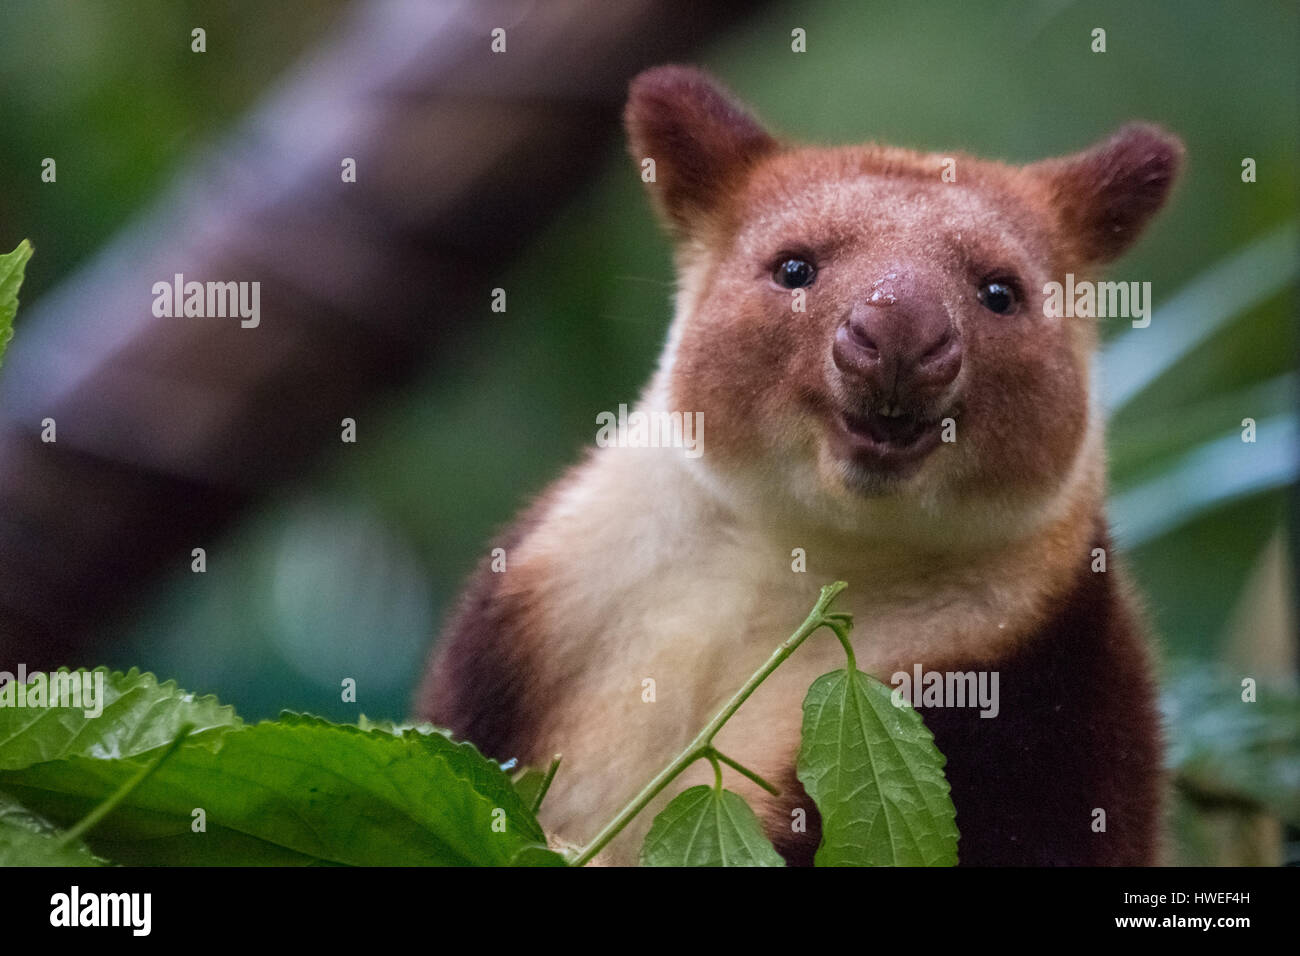 Tree Kangaroo - Stock Image